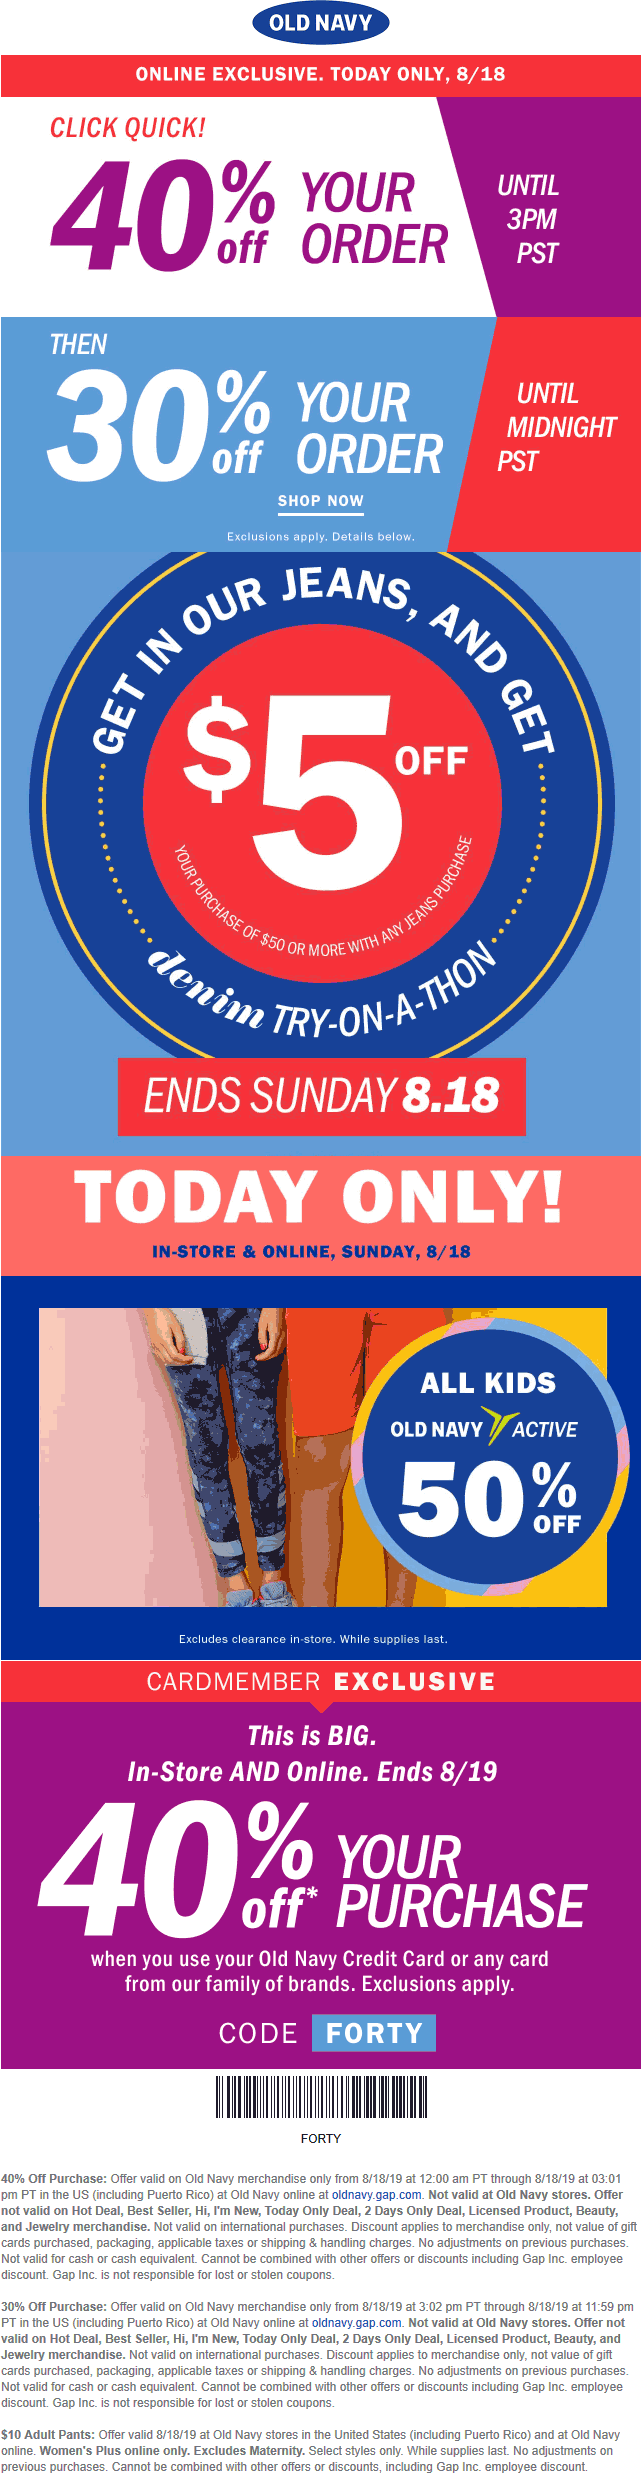 OldNavy.com Promo Coupon 40% off online & more today at Old Navy via promo code FORTY